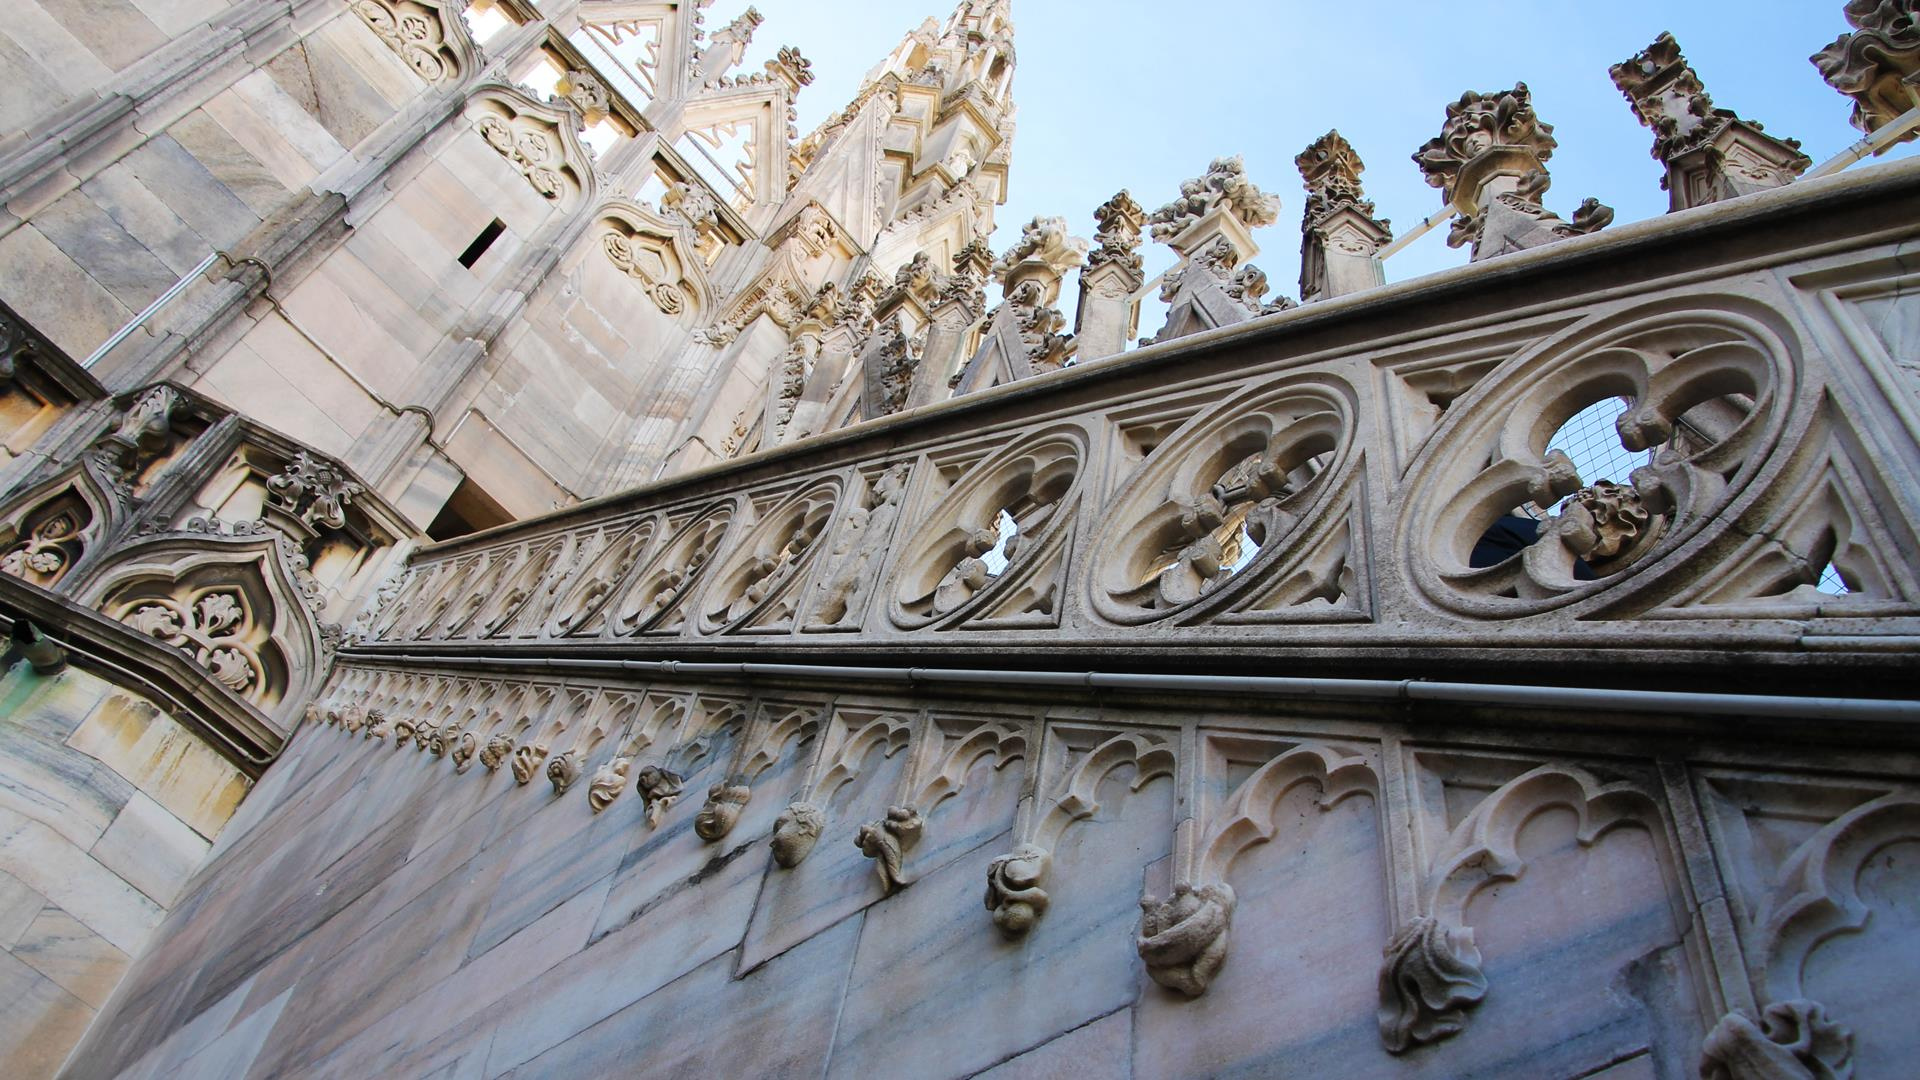 The Peducci Of The Duomo Di Milano Curious Expressions Of